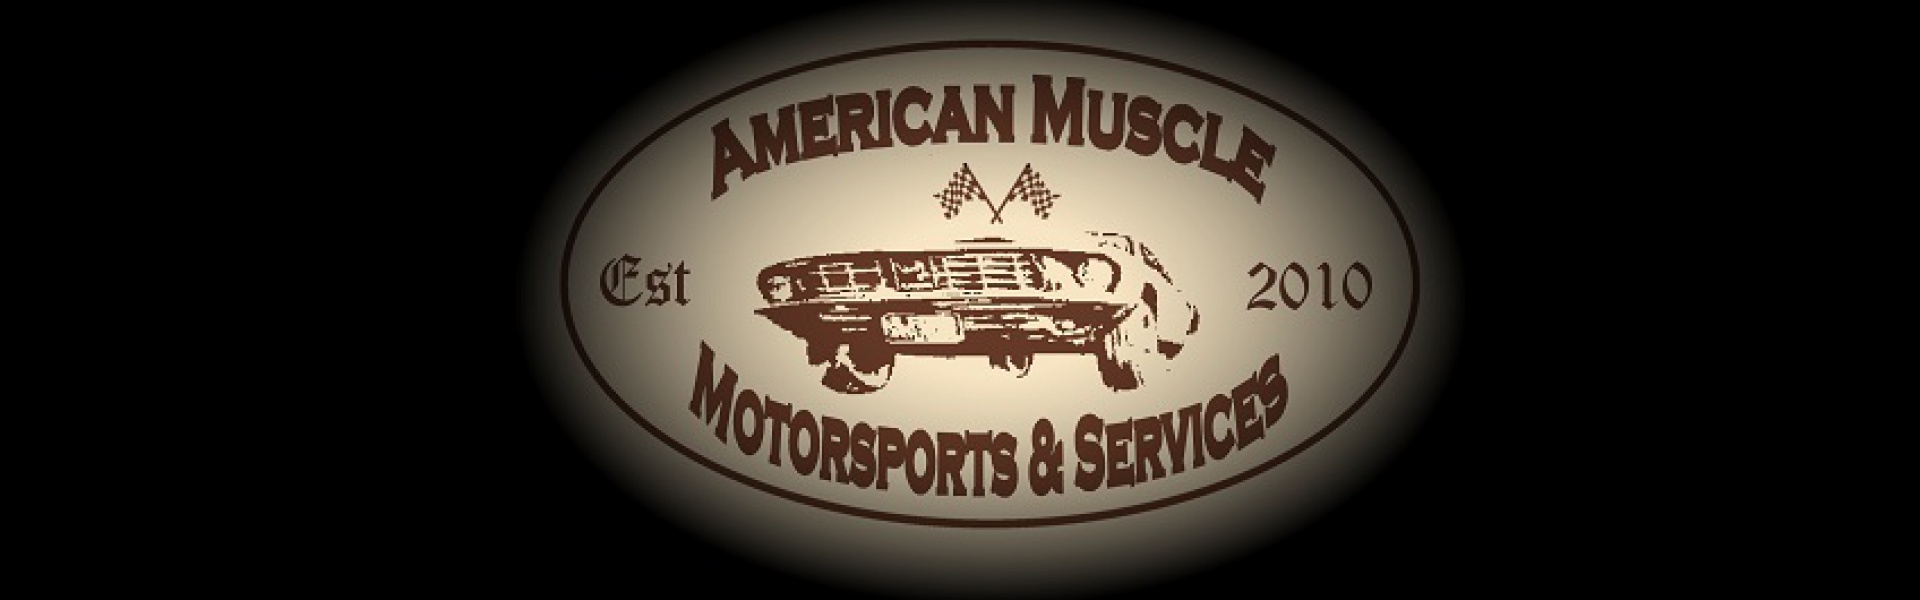 American Muscle Motorsports & Services